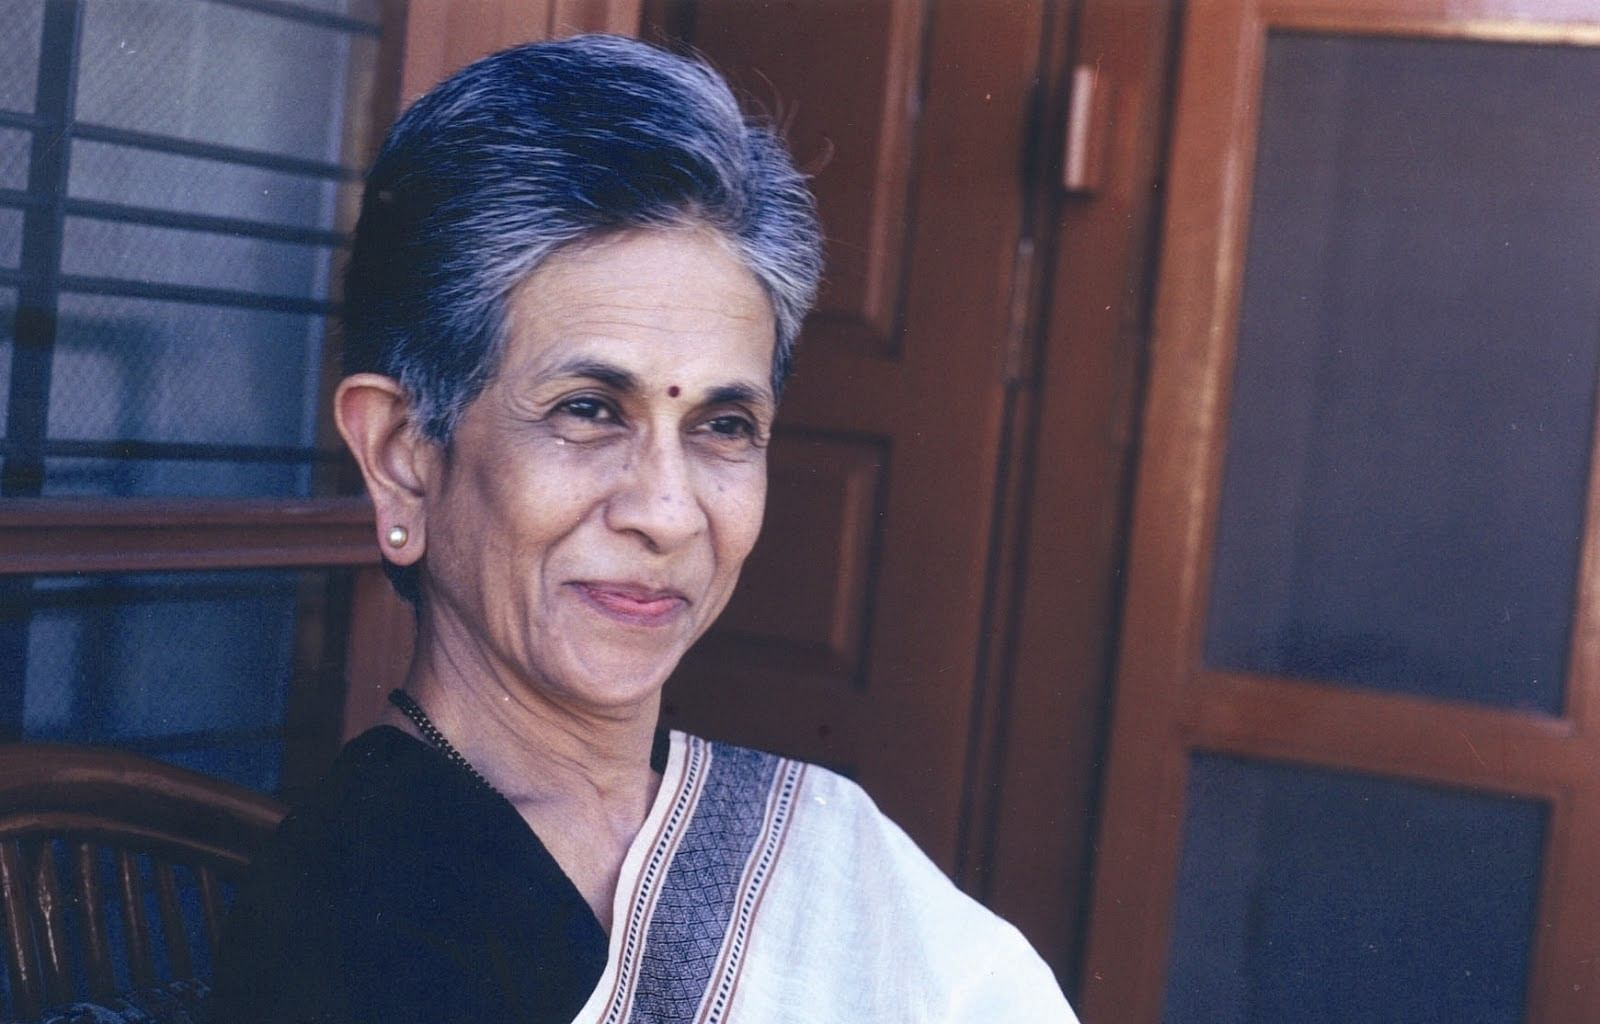 Padma Shri awardee Shashi Deshpande is proud of putting across a woman's perspective in her writings.